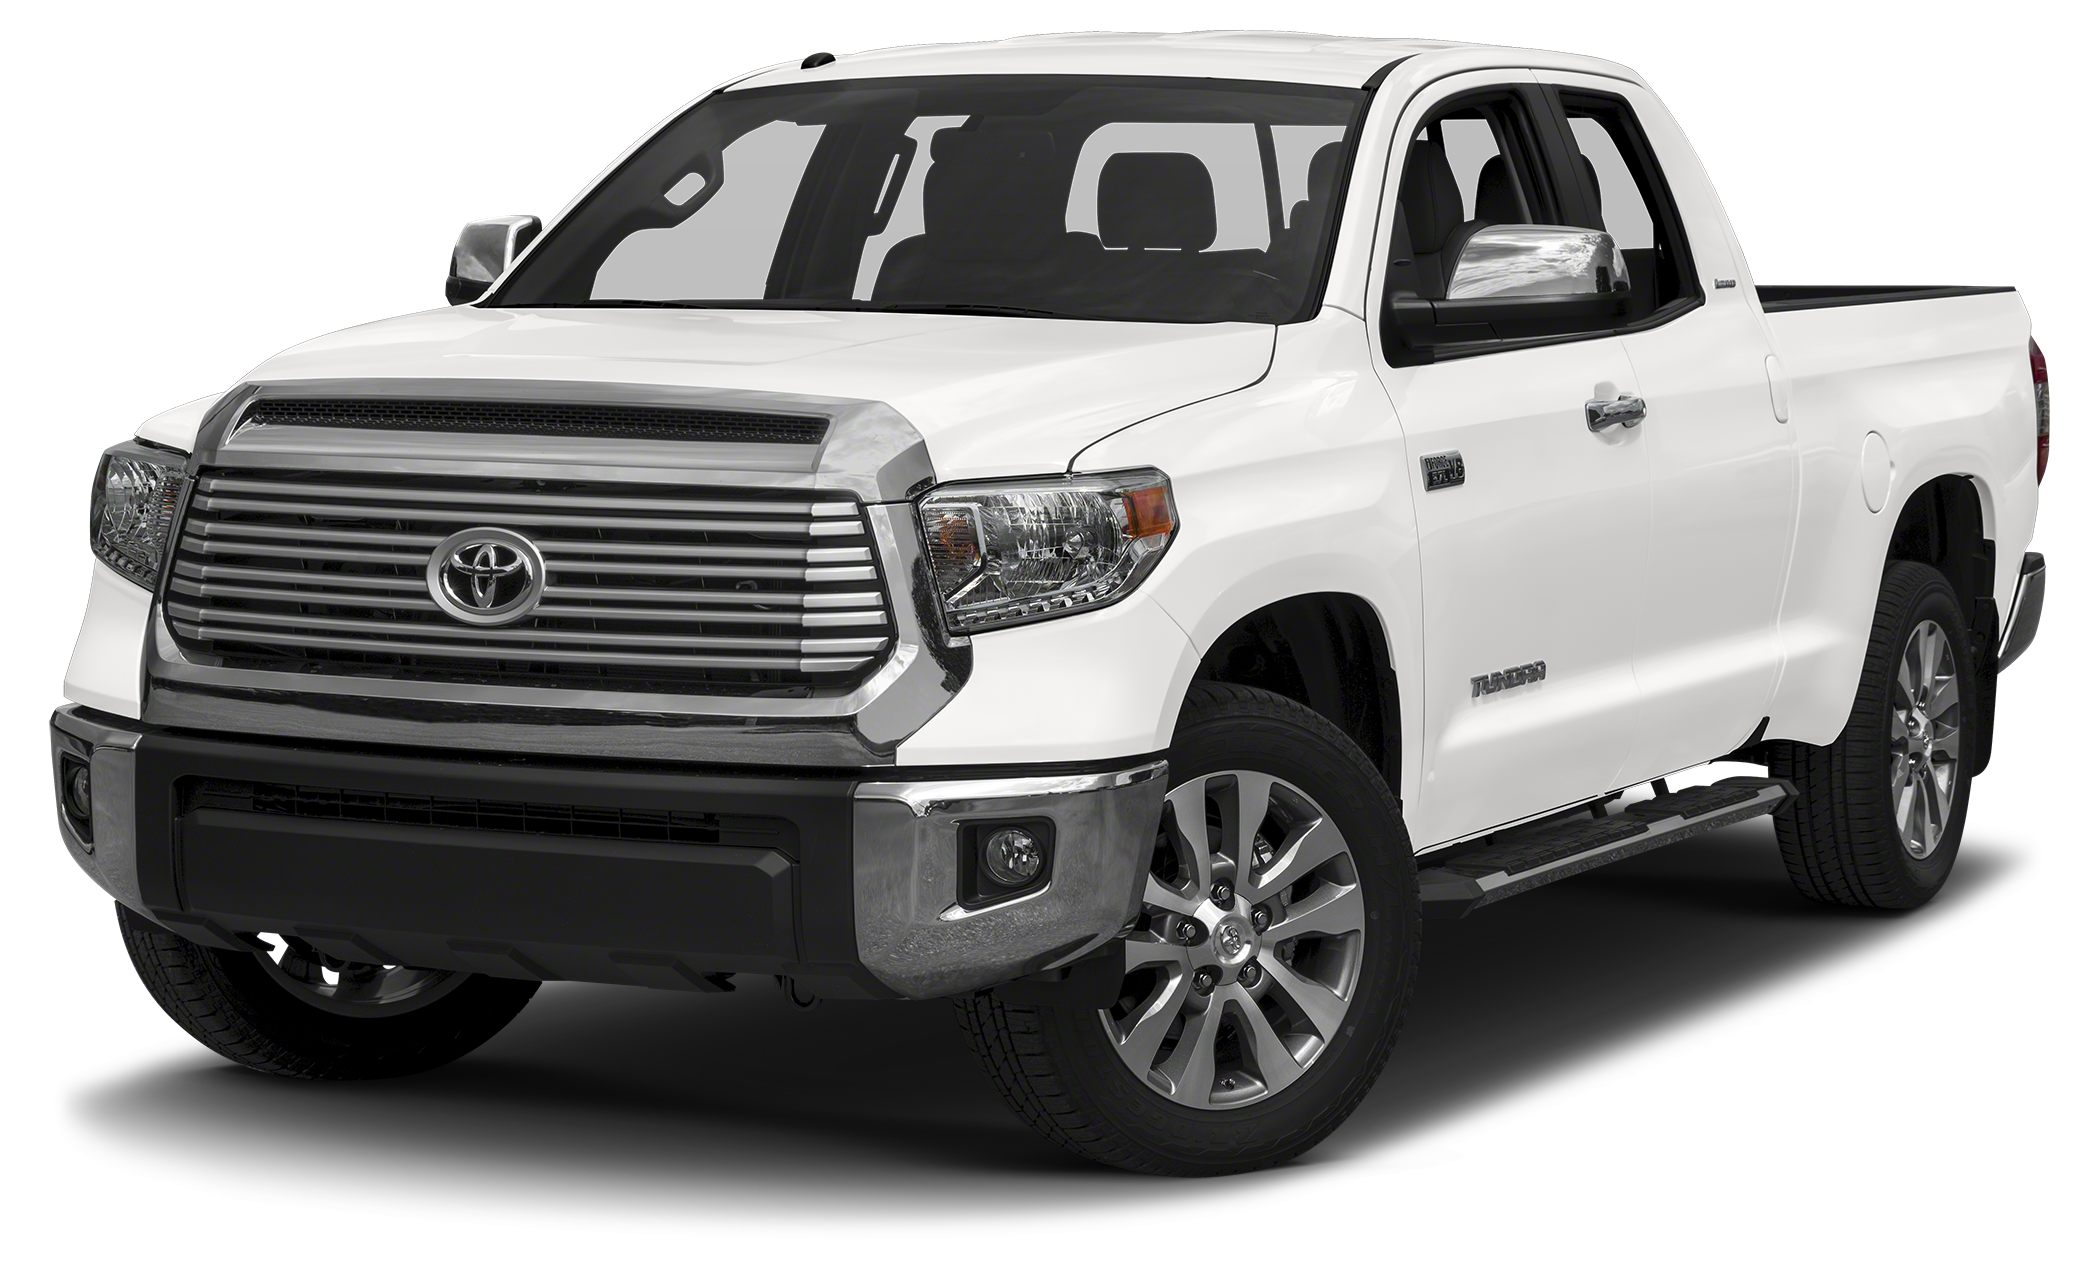 2016 Toyota Tundra Limited Miles 0Color Super White Stock 63612 VIN 5TFBW5F18GX563612